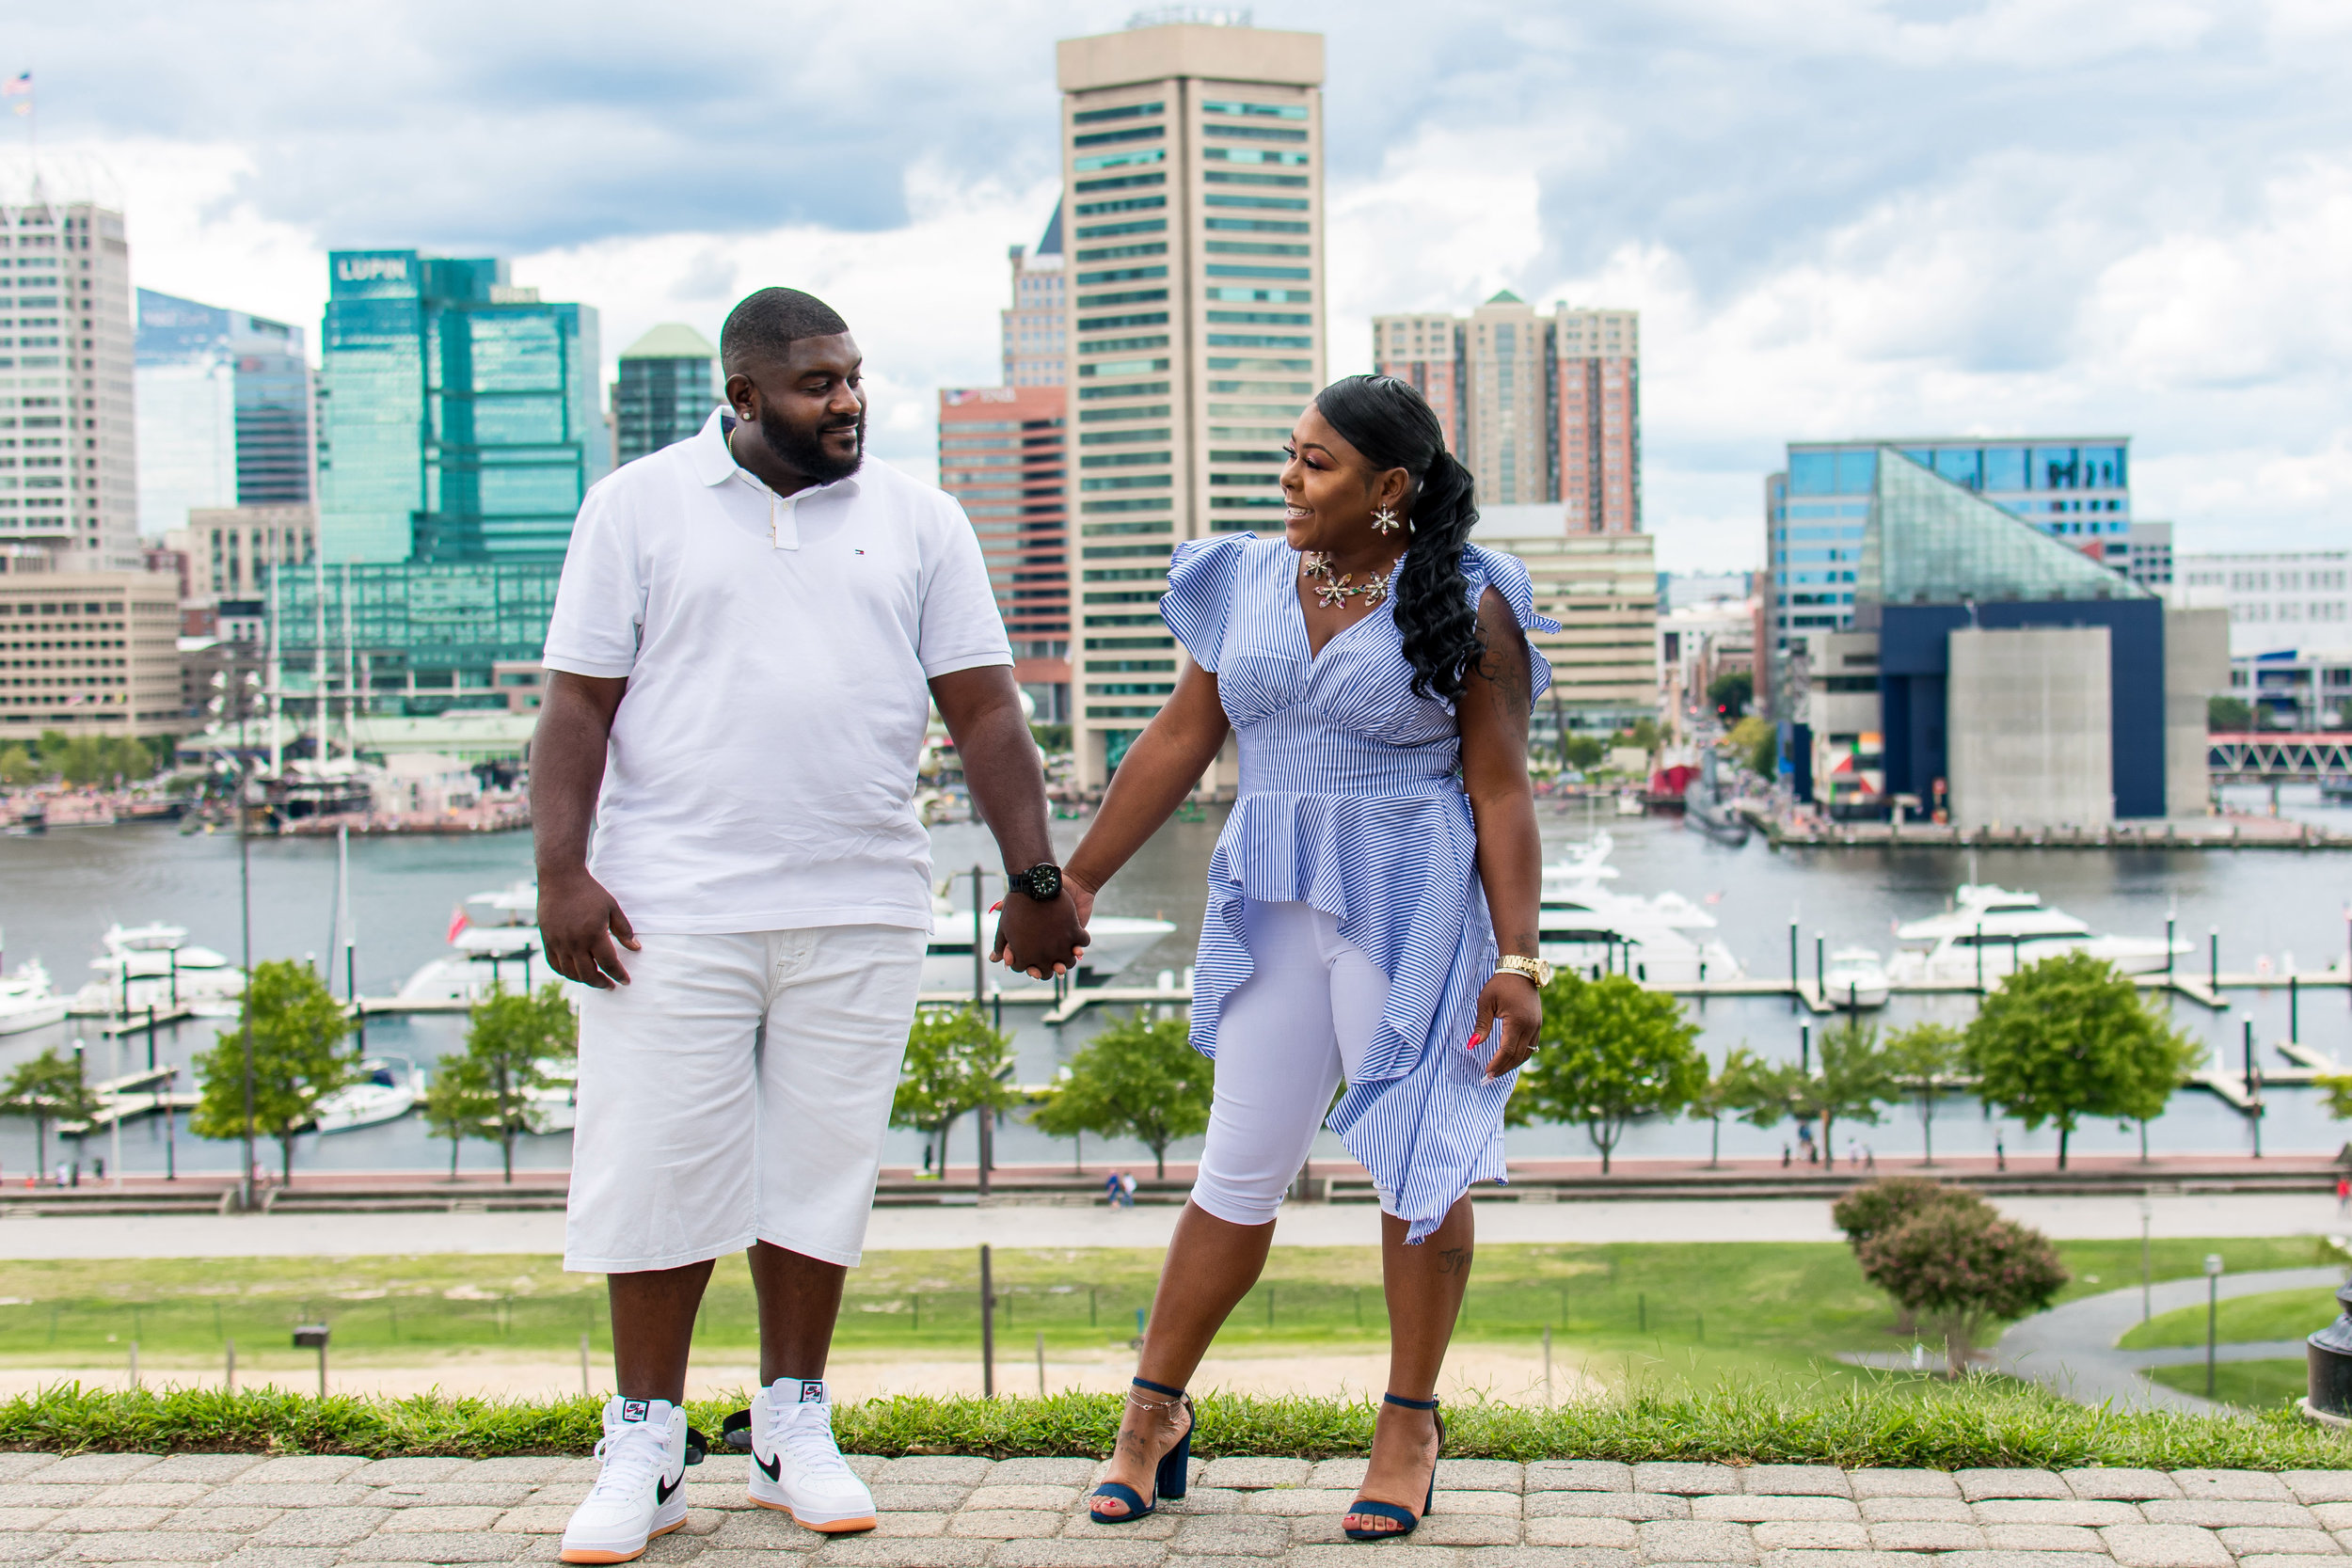 See more from Ashley & Brian's Engagement